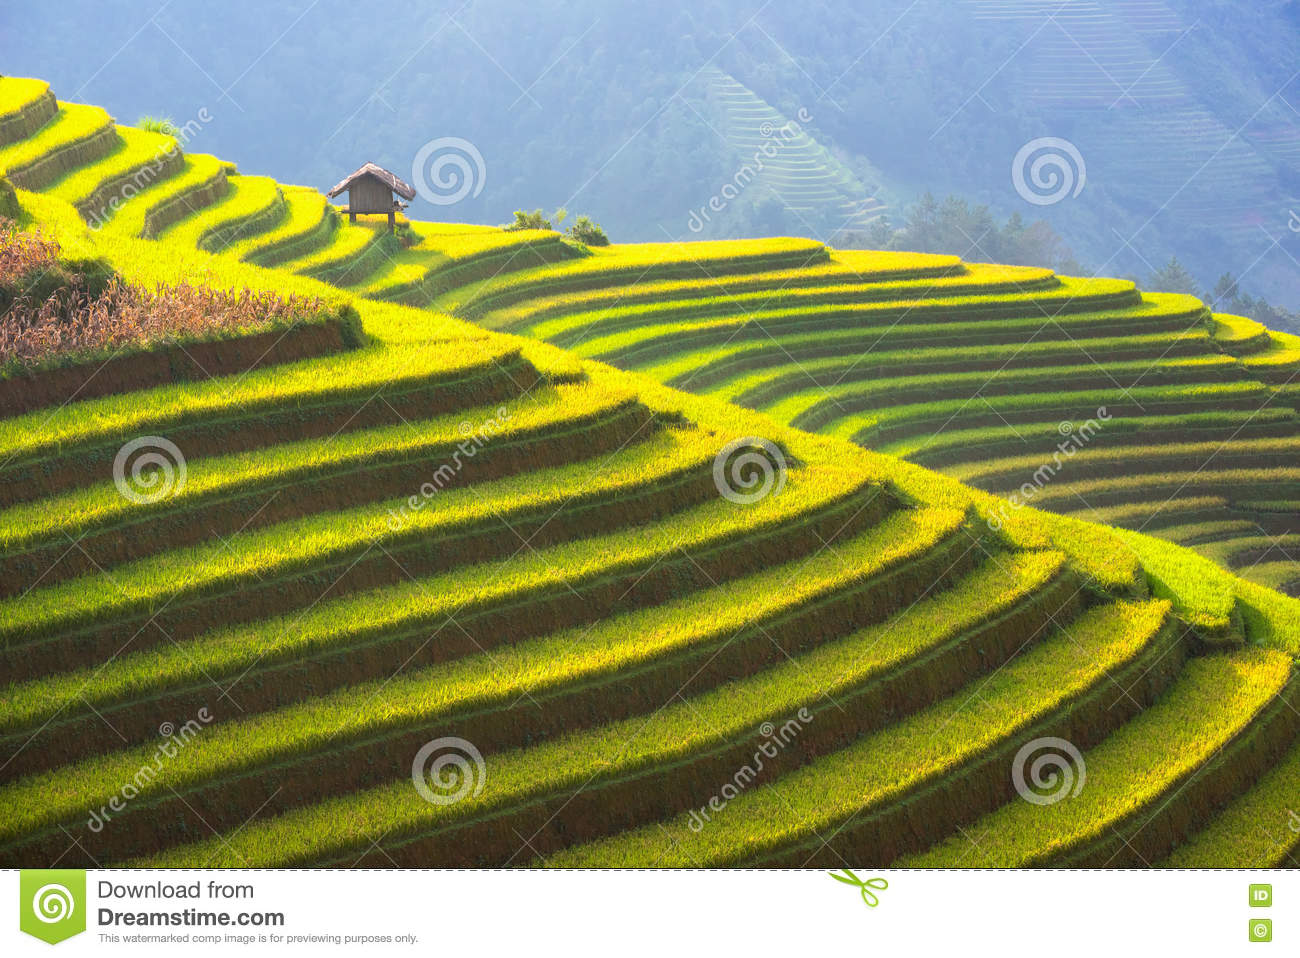 The Beautiful layer of Mountain and nature in rice terrace of Vietnam Landscape